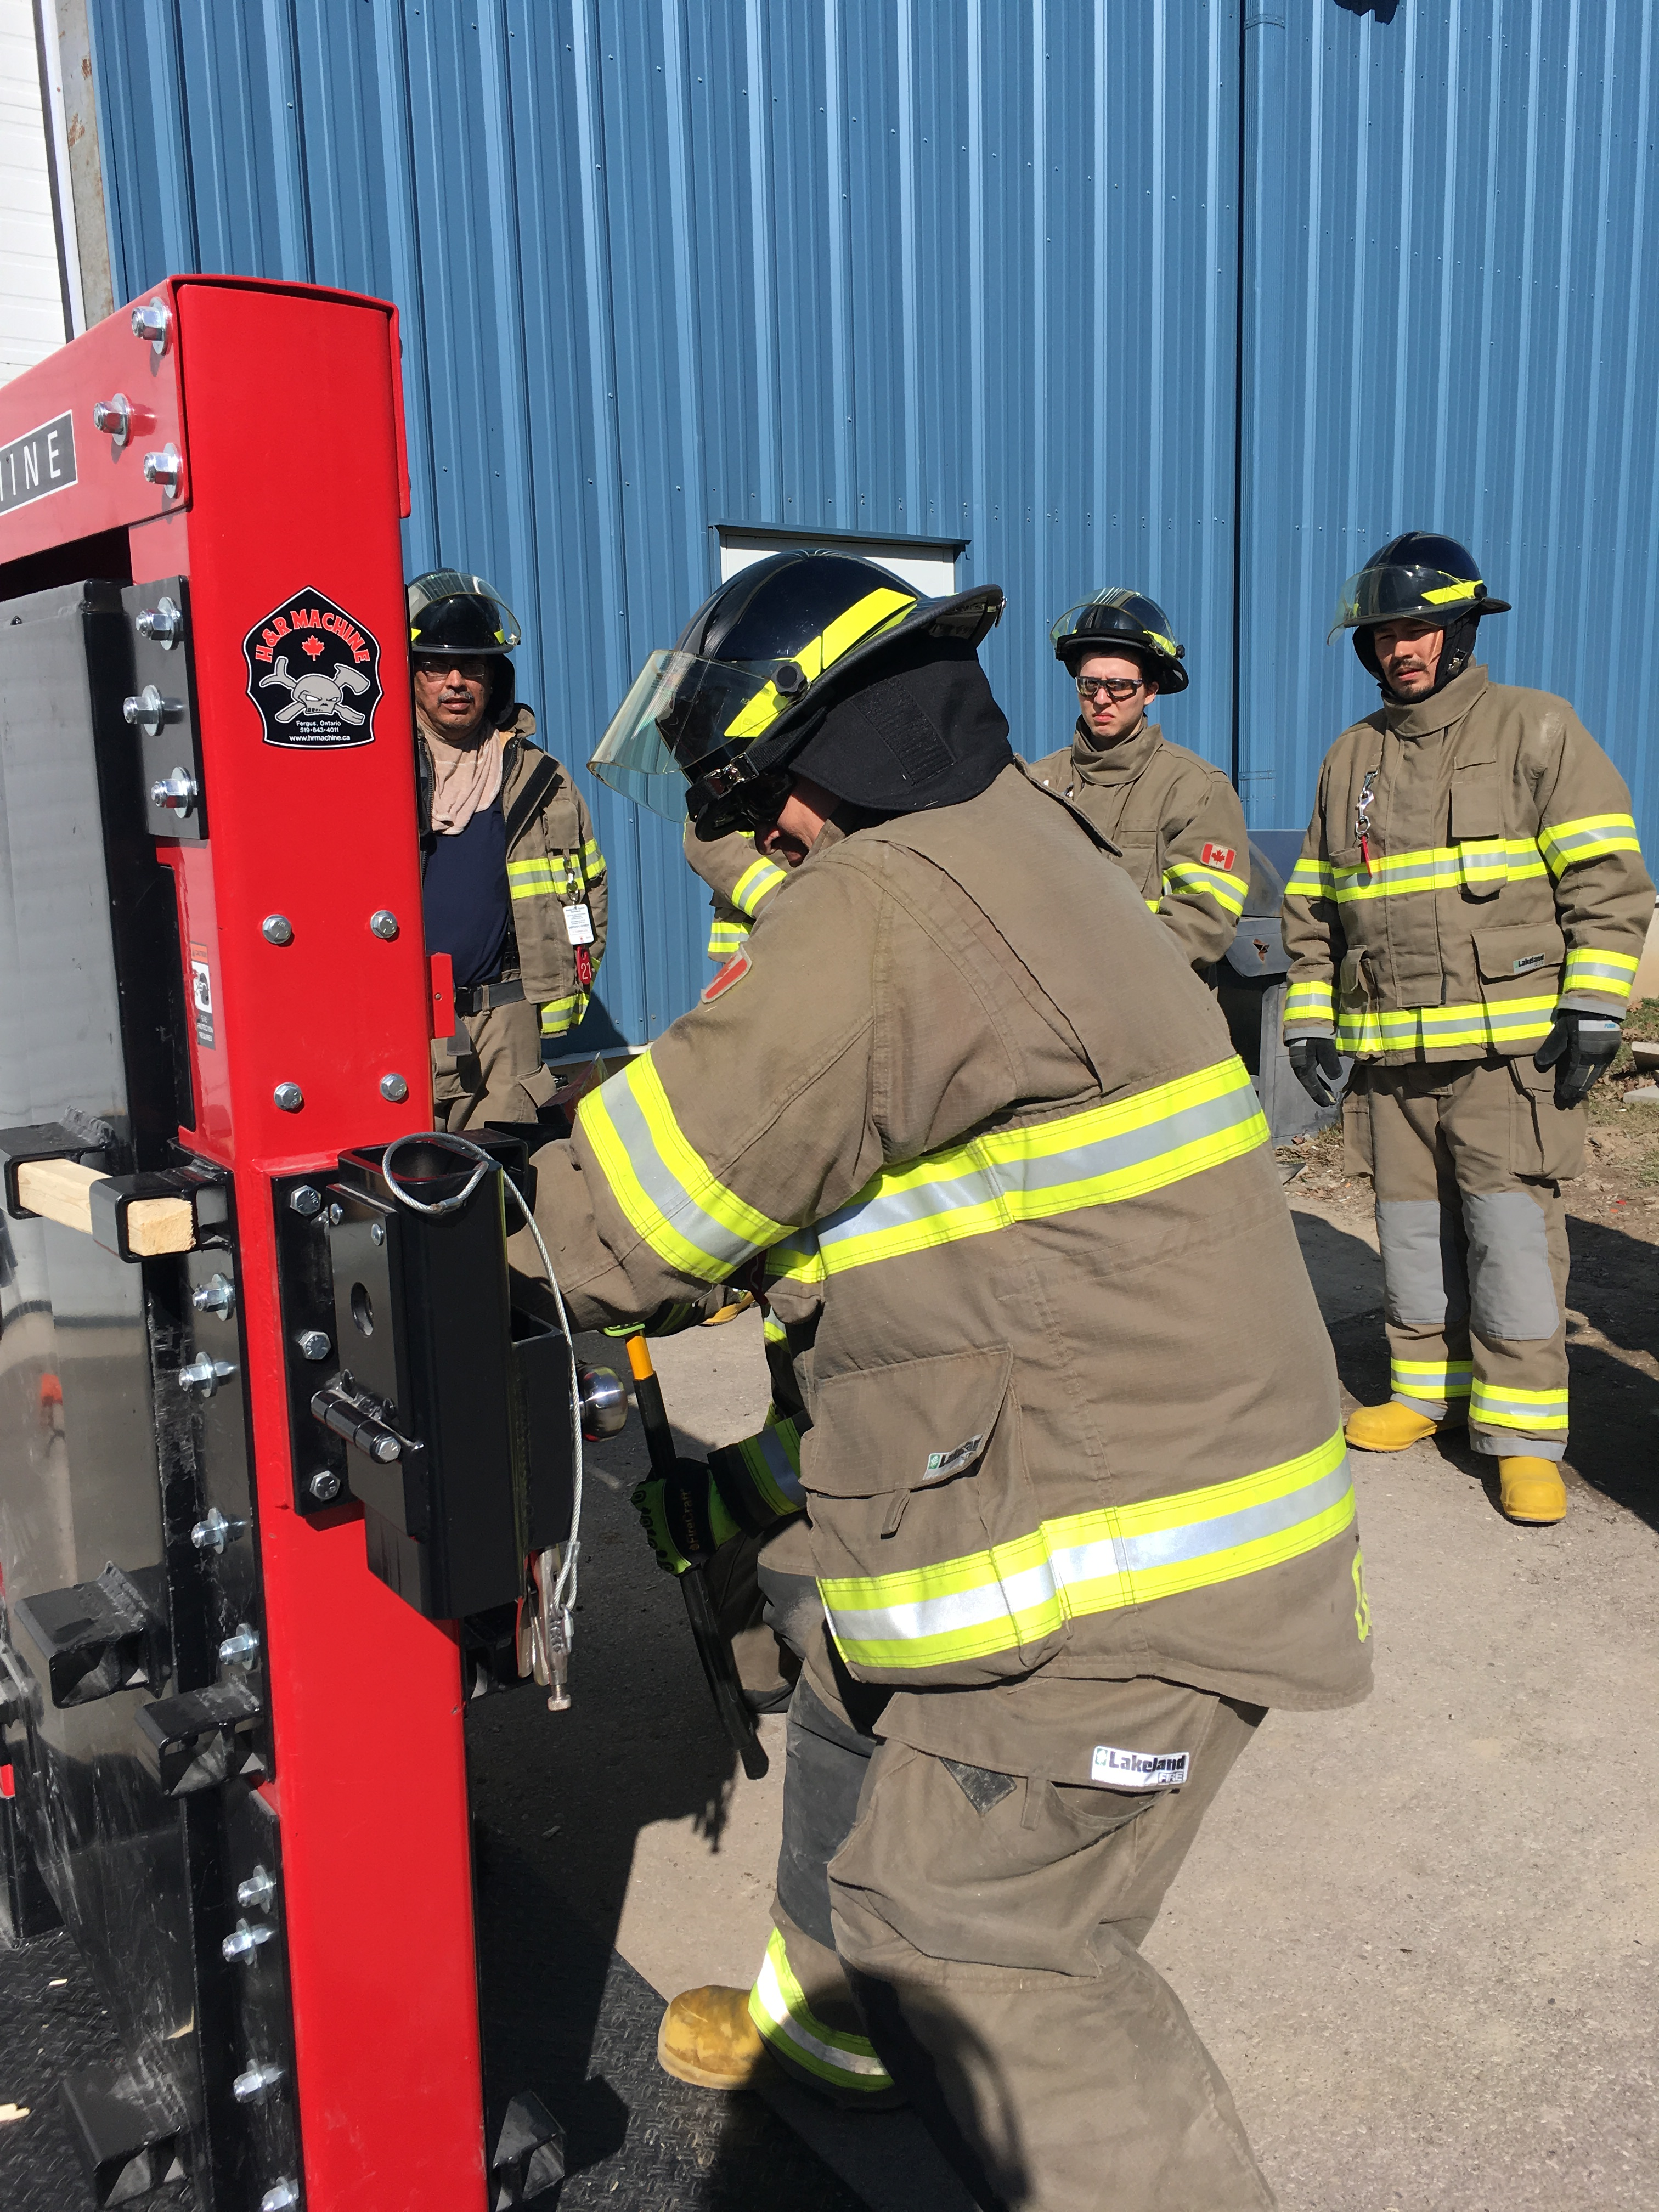 Fire fighters training to force open a door